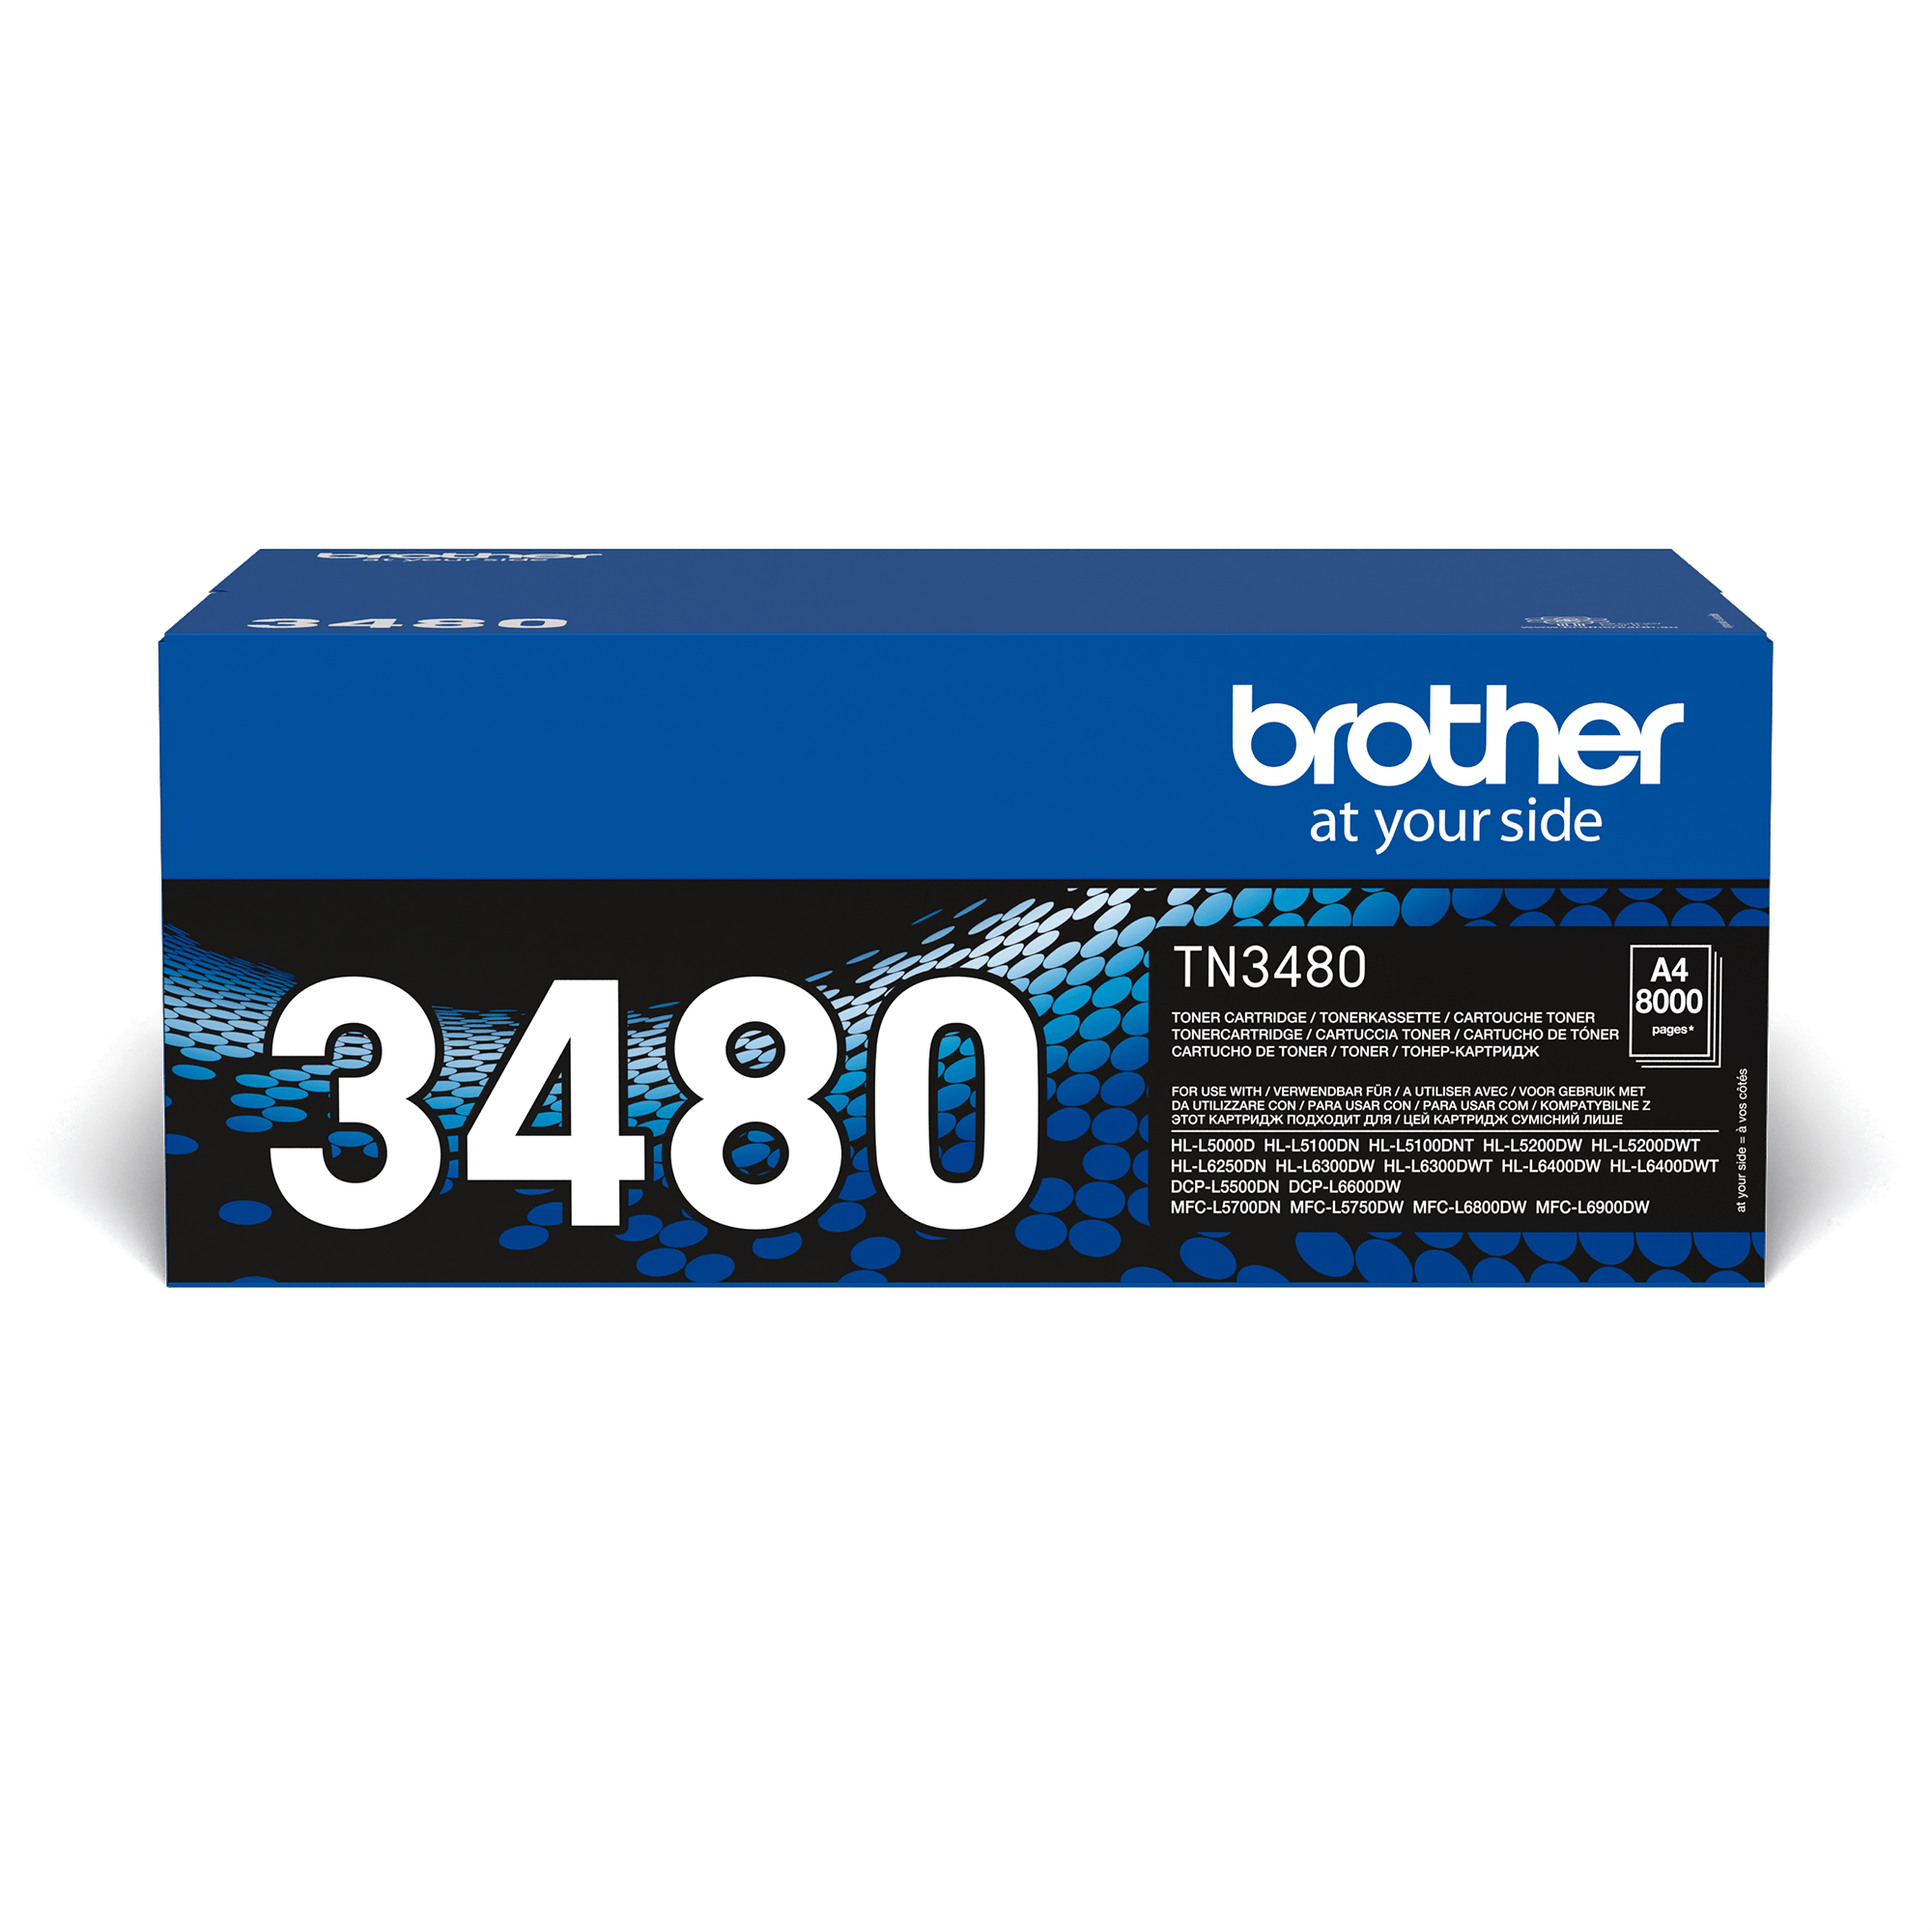 Brother TN3480 toner noir - haut rendement 2